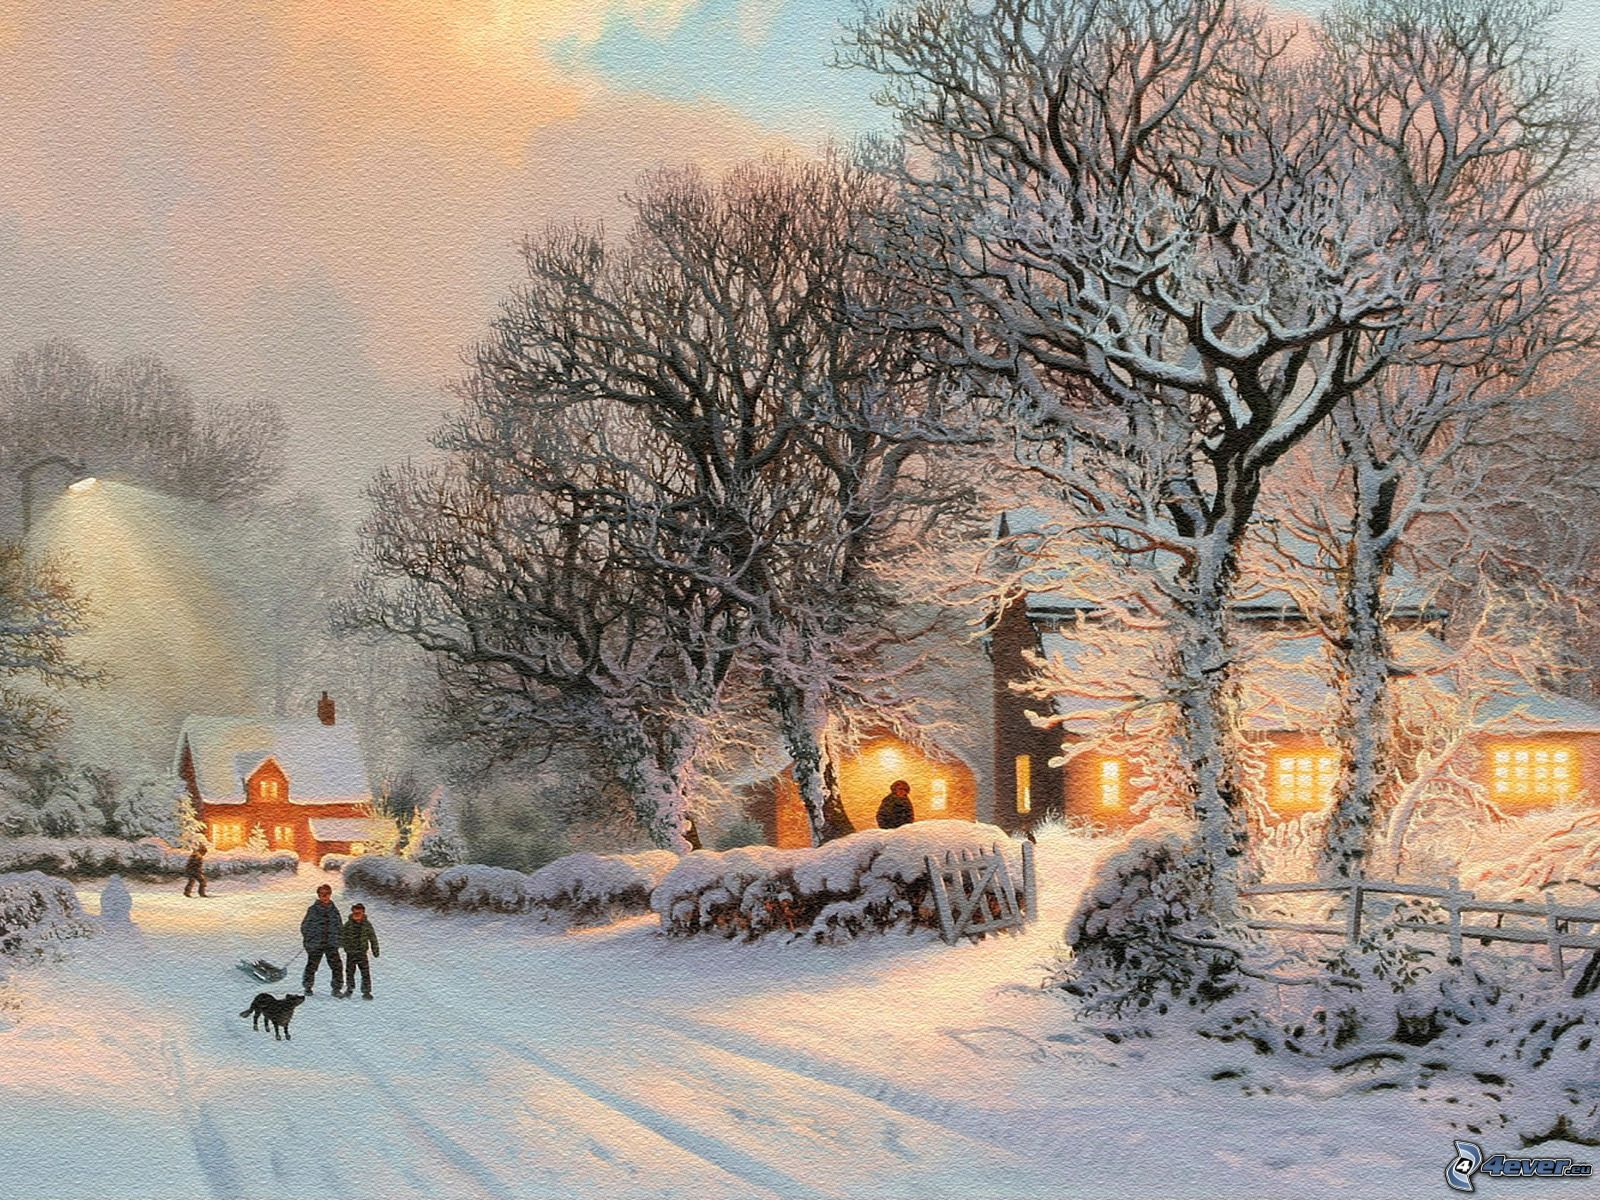 snowy english village wallpaper - photo #24